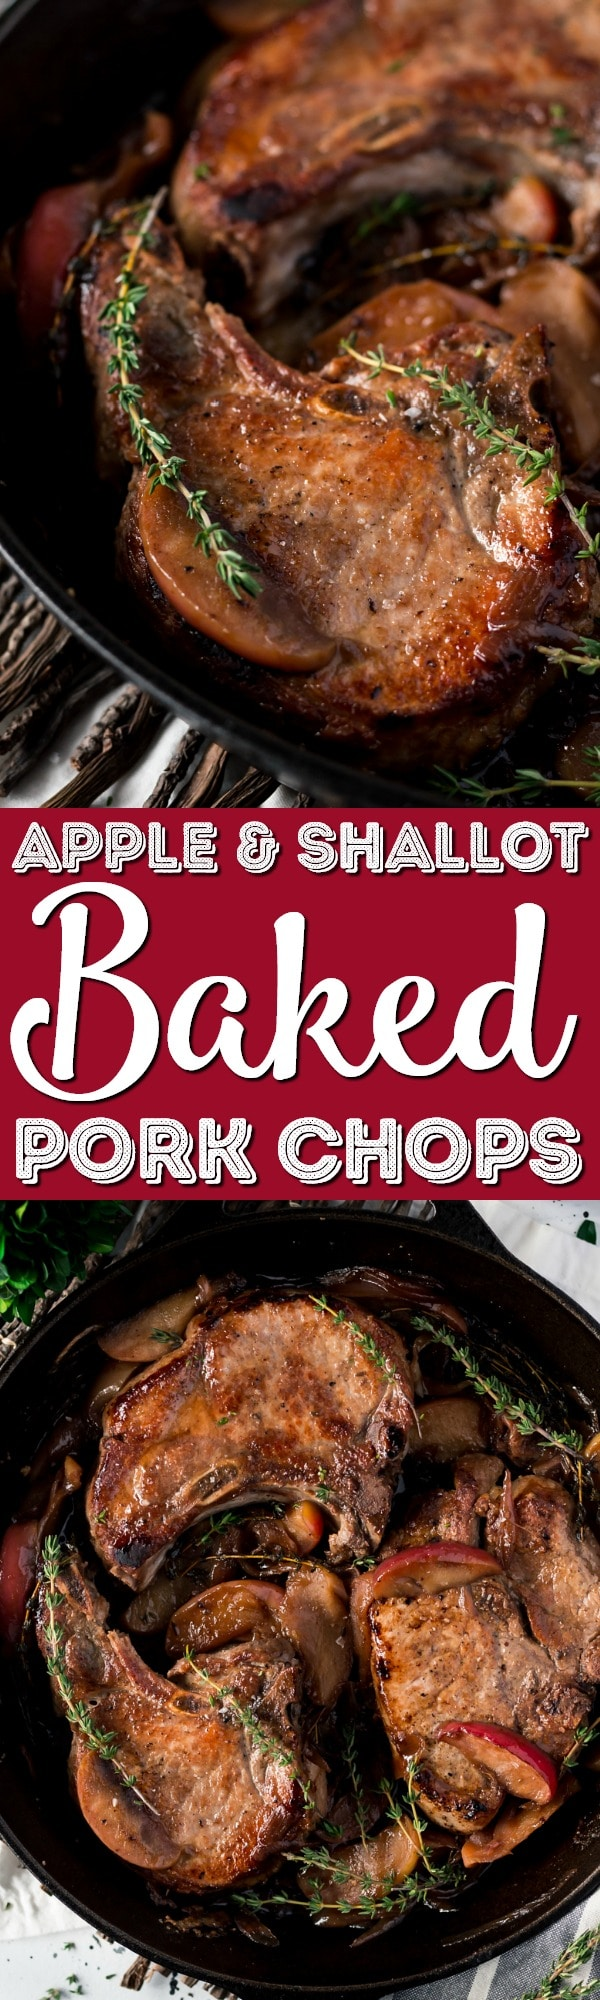 This Baked Pork Chops recipe will be an instant family dinner favorite! Made with wine, apples, and shallots, there's so much flavor in this pork recipe! via @sugarandsoulco